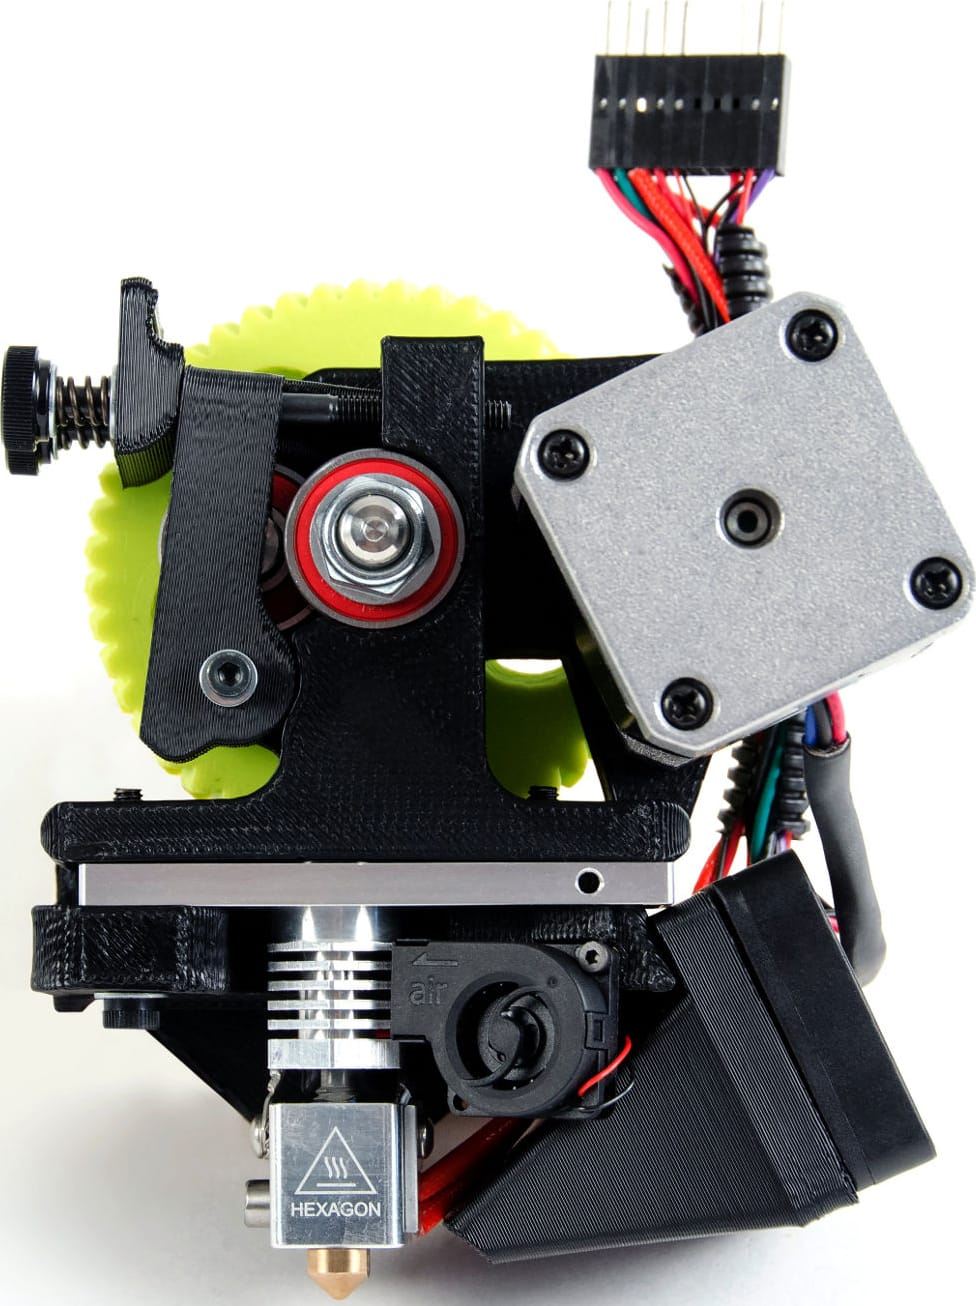 Lulzbot KT-CP0085 LulzBot Mini Tool Head v2, 0.5mm Nozzle